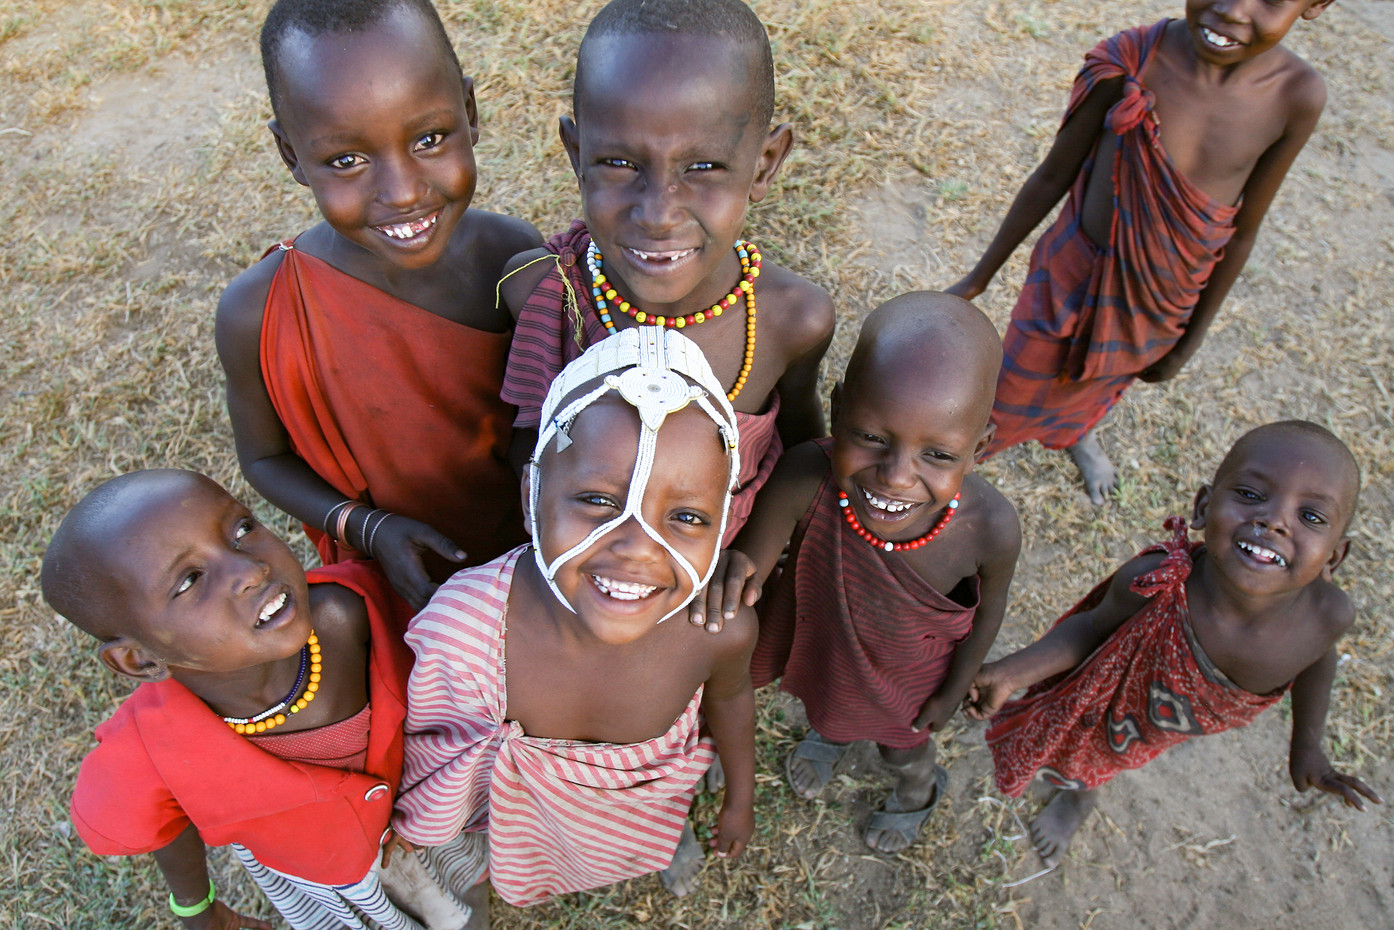 Masai chldren near Lake Natron, Tanzania